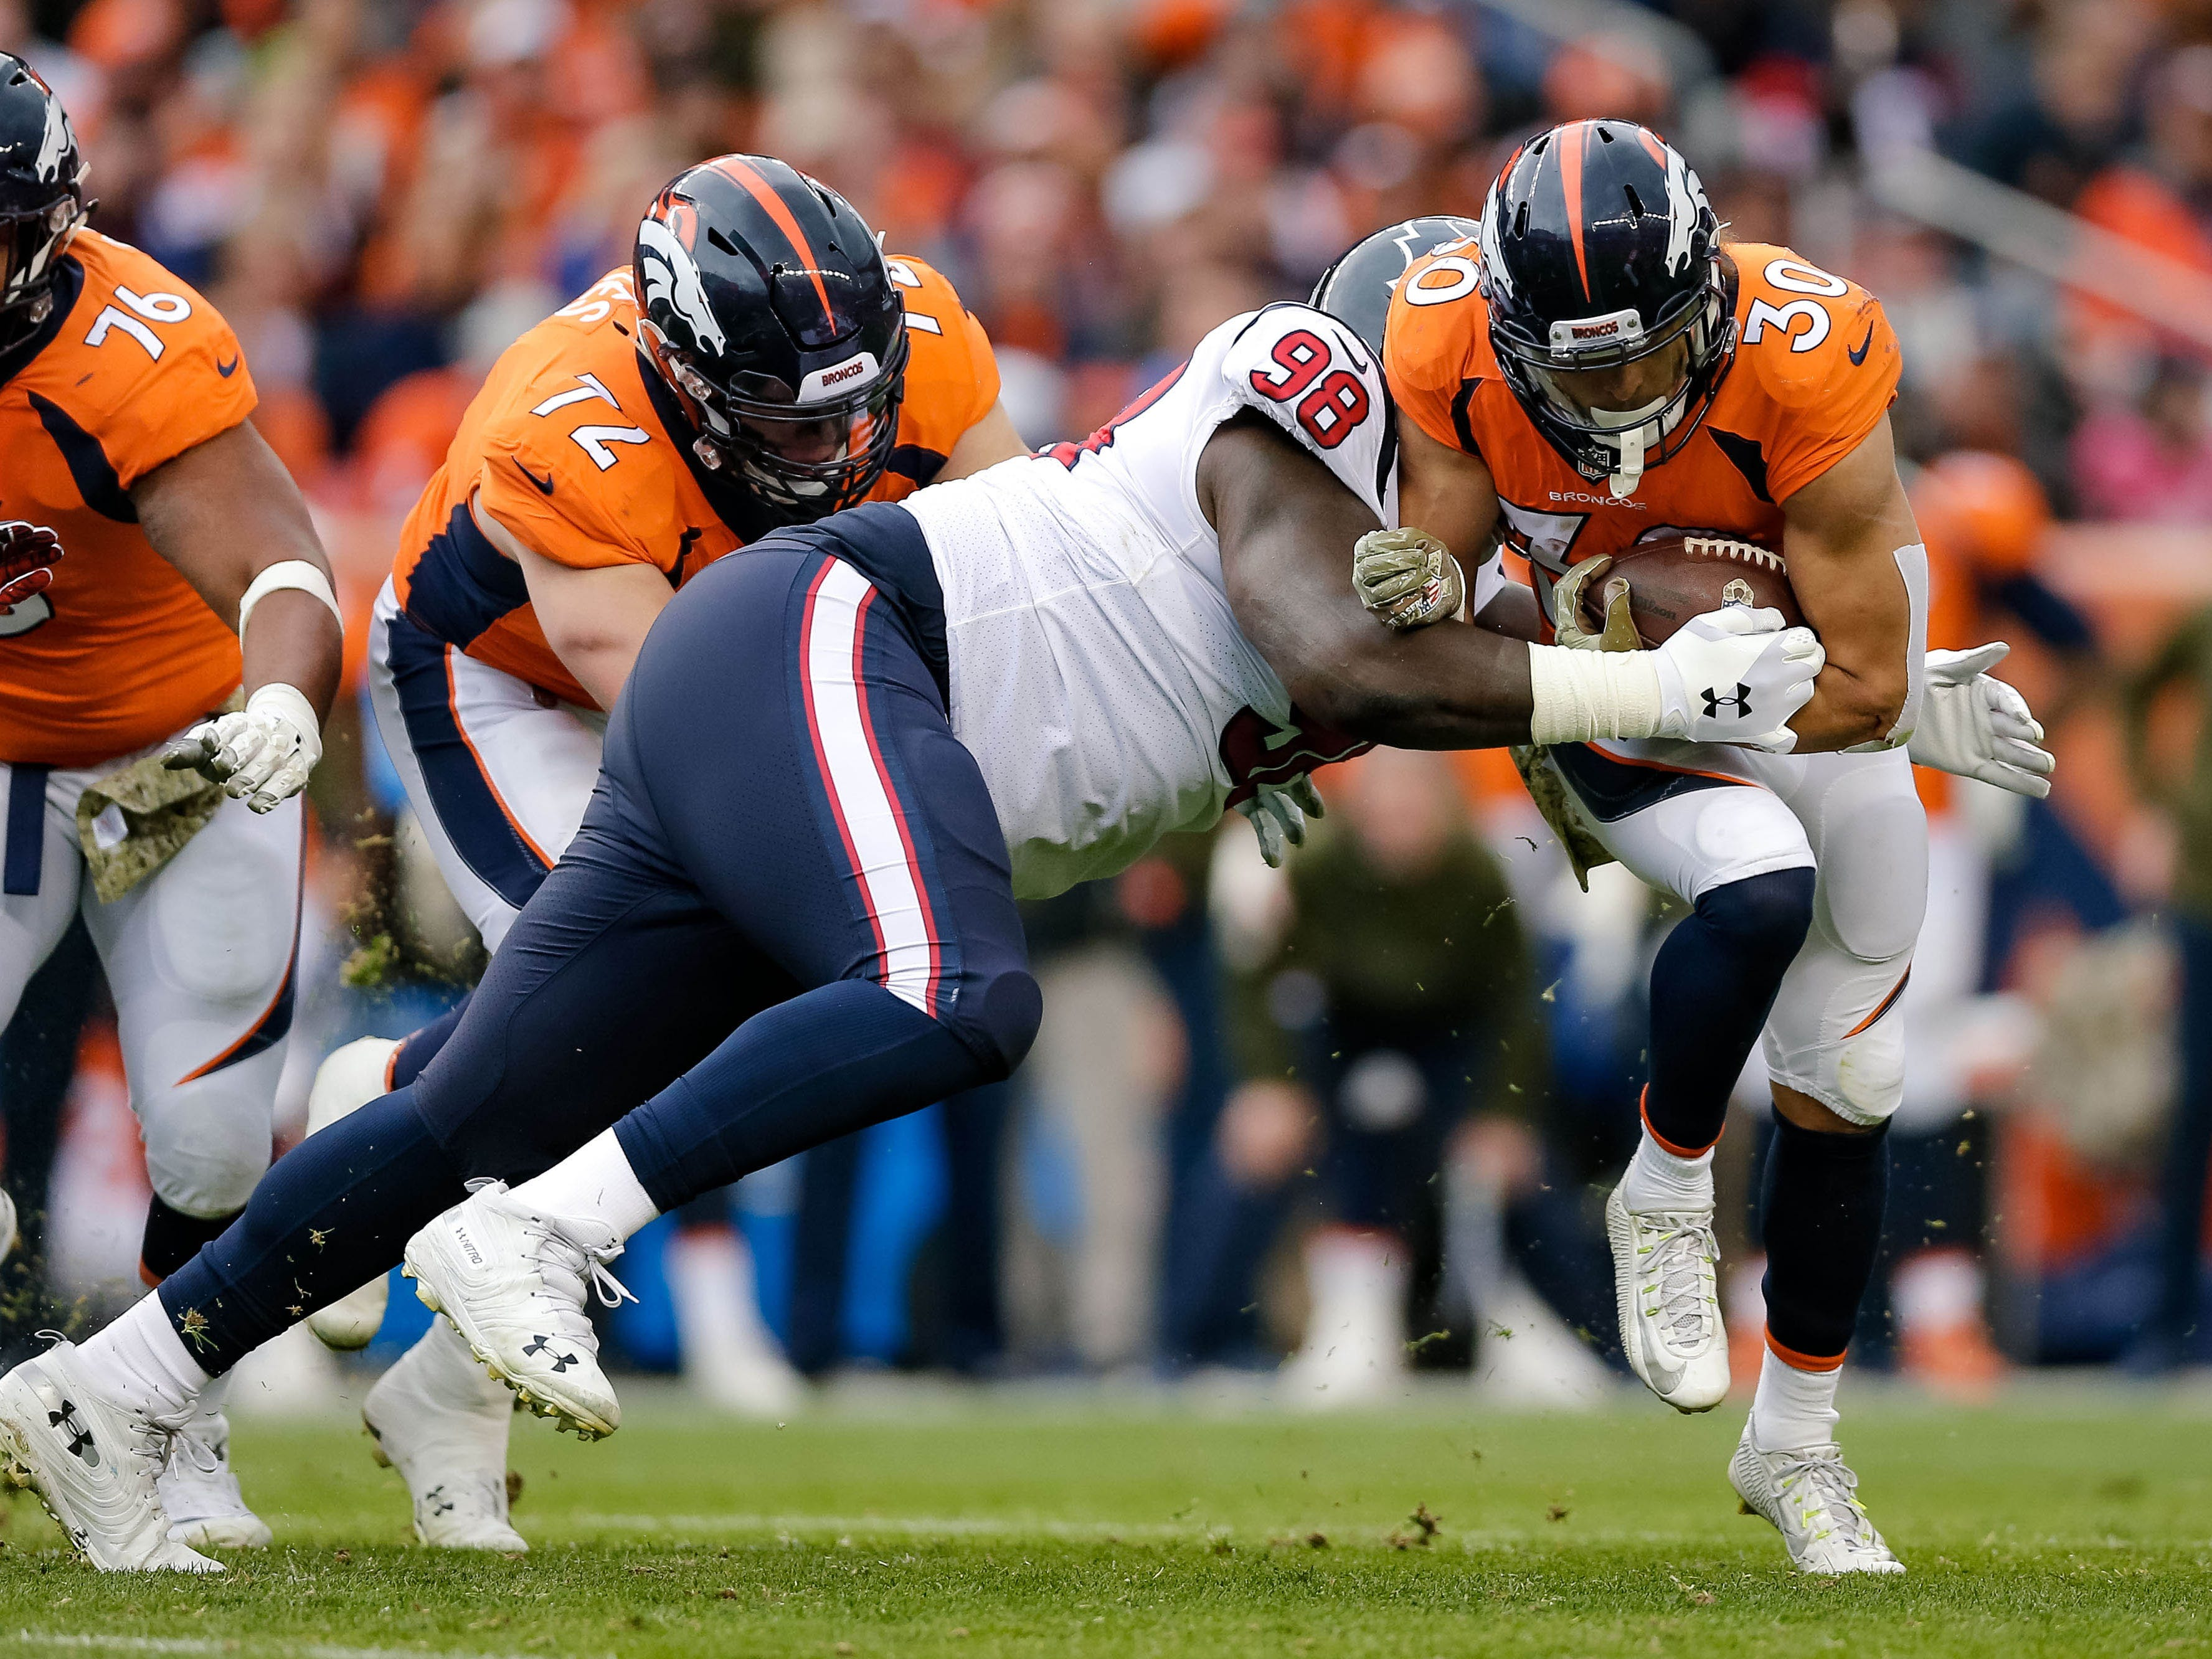 Houston Texans defensive end D.J. Reader (98) tackles Denver Broncos running back Phillip Lindsay (30) in the first quarter at Broncos Stadium at Mile High.